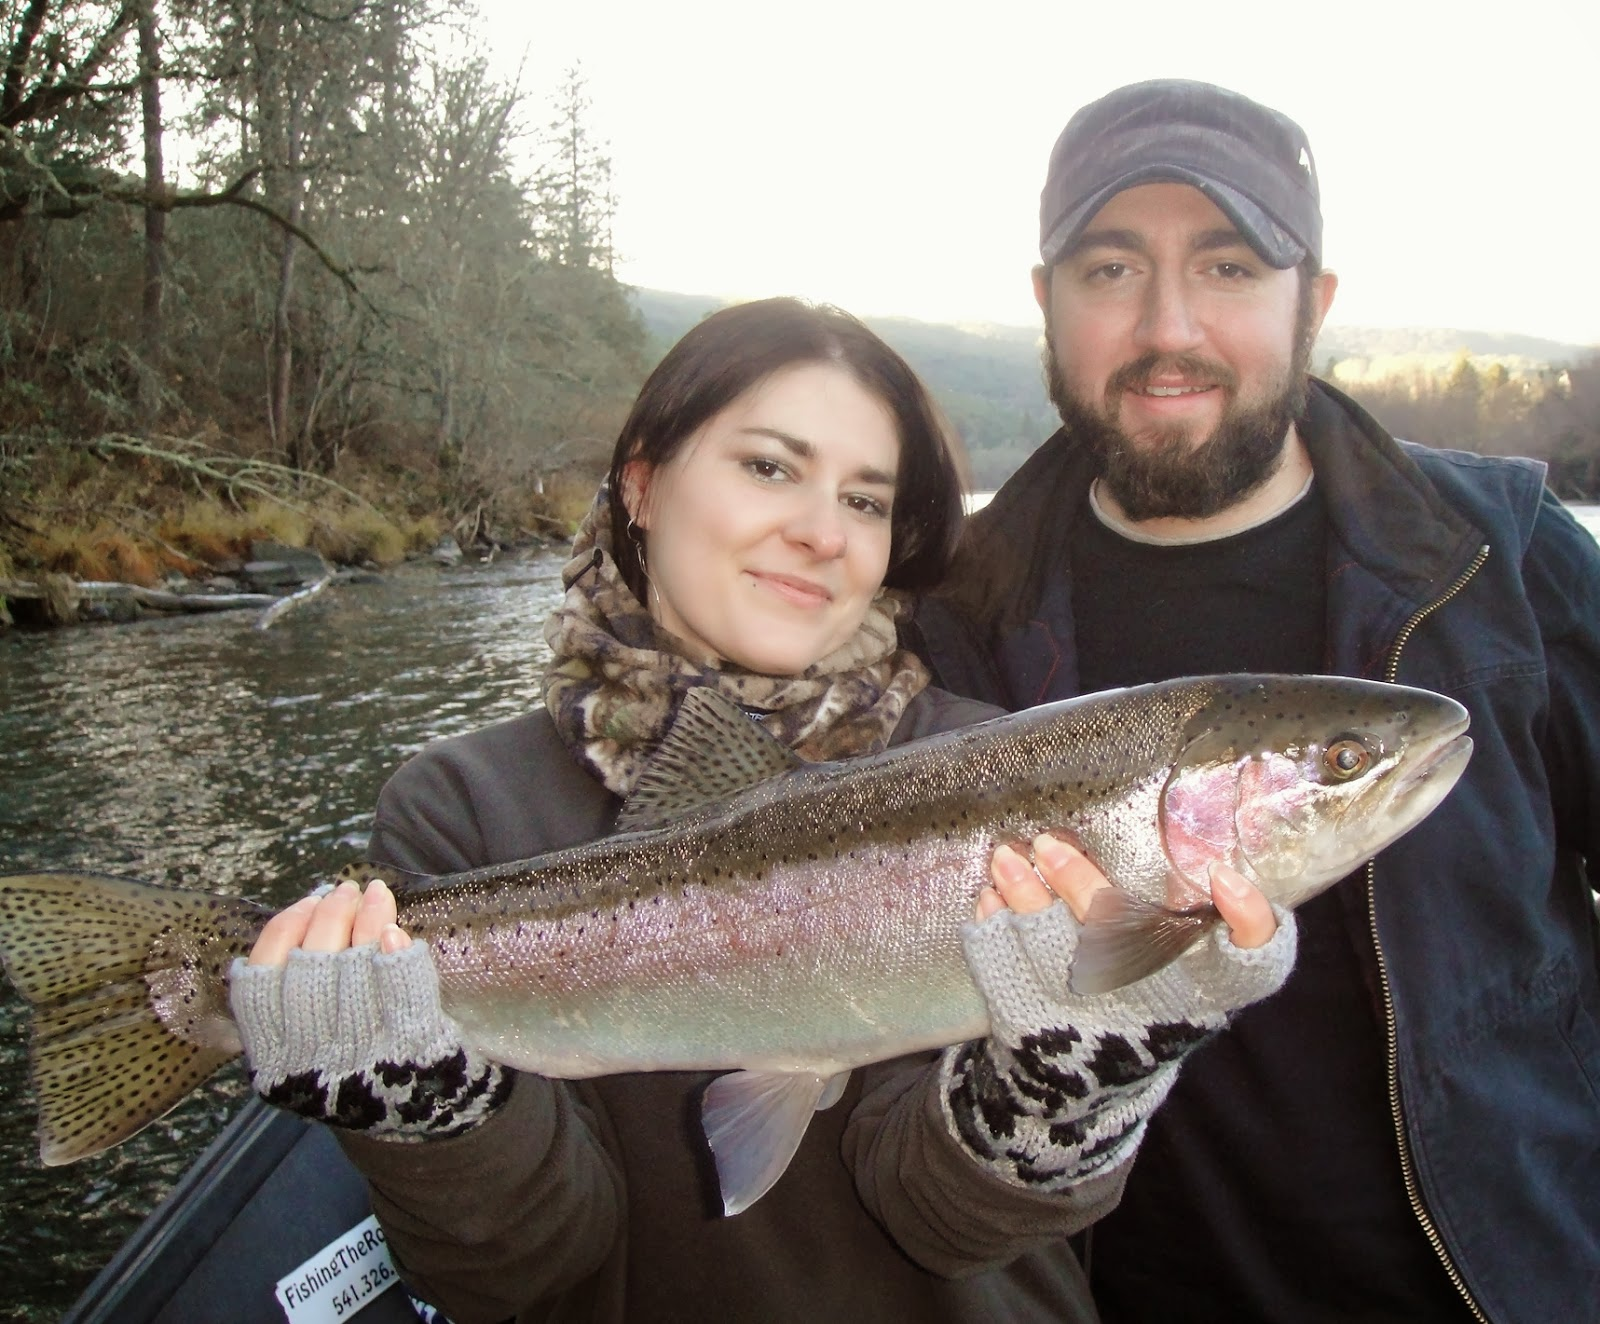 Oregon fishing report for the rogue river rogue river for Oregon steelhead fishing